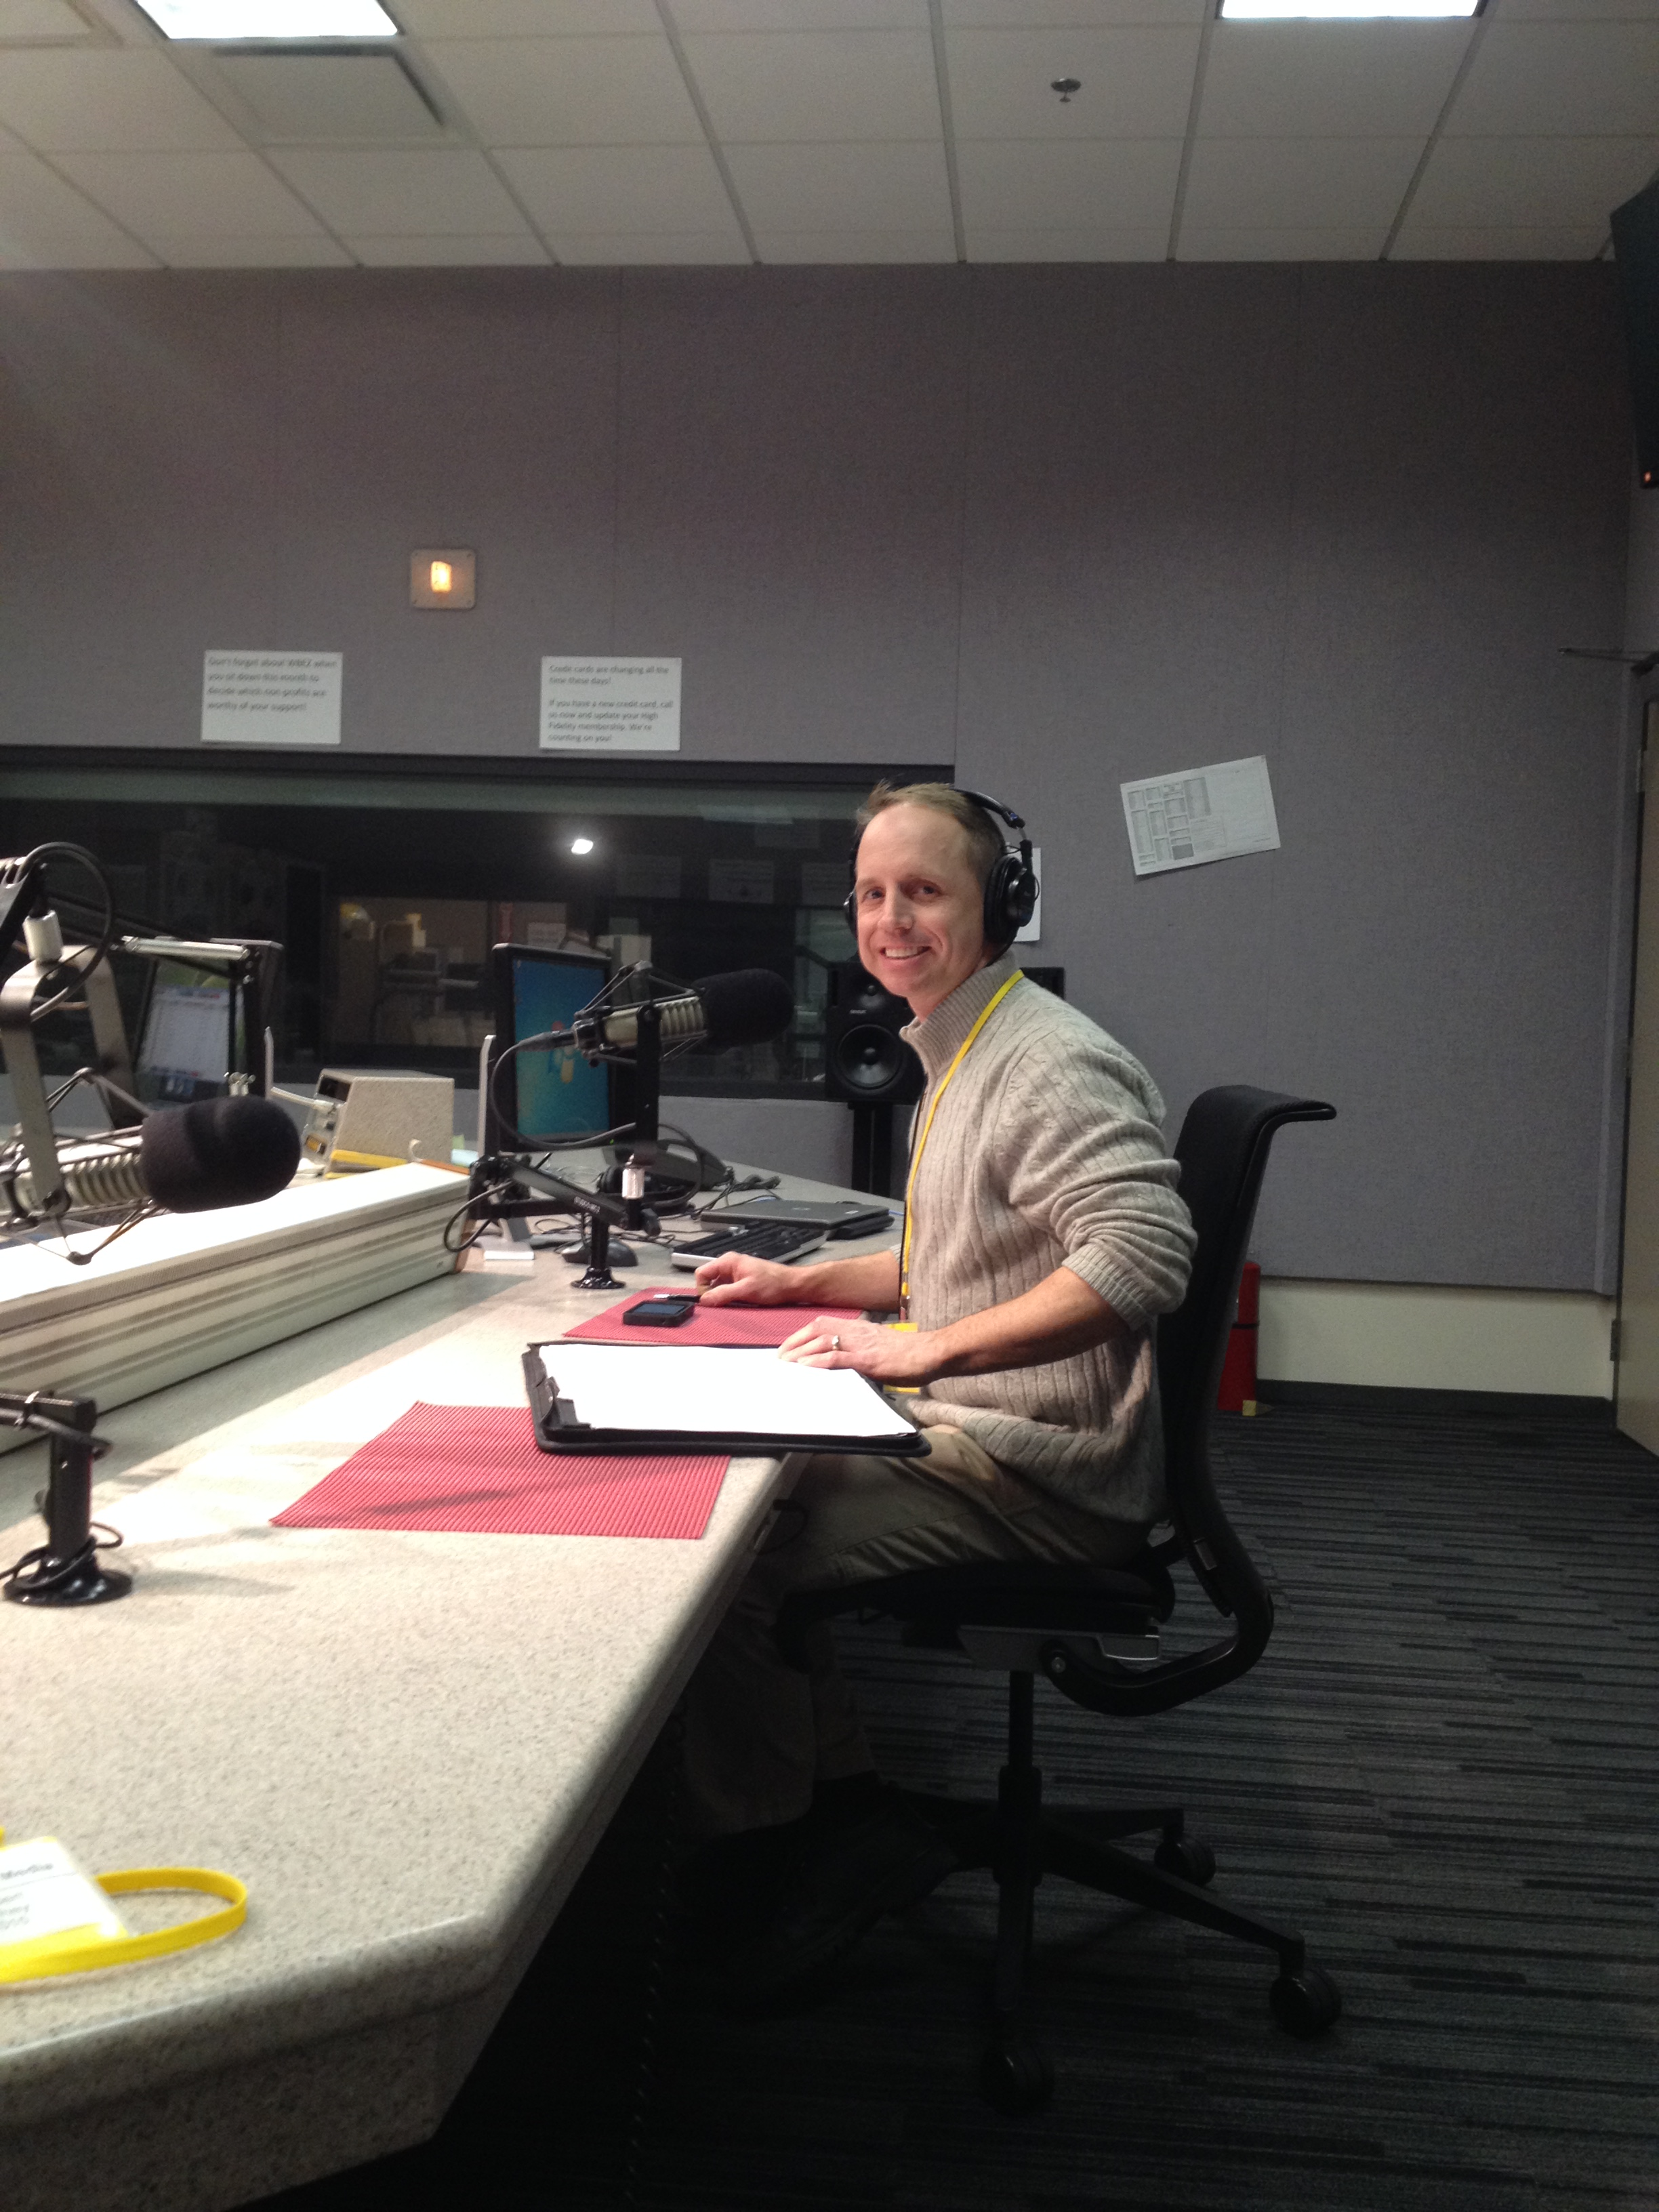 Tom Sybert - Being Interviewed on Innovation Hub at WBEZ NPR in Chicago.